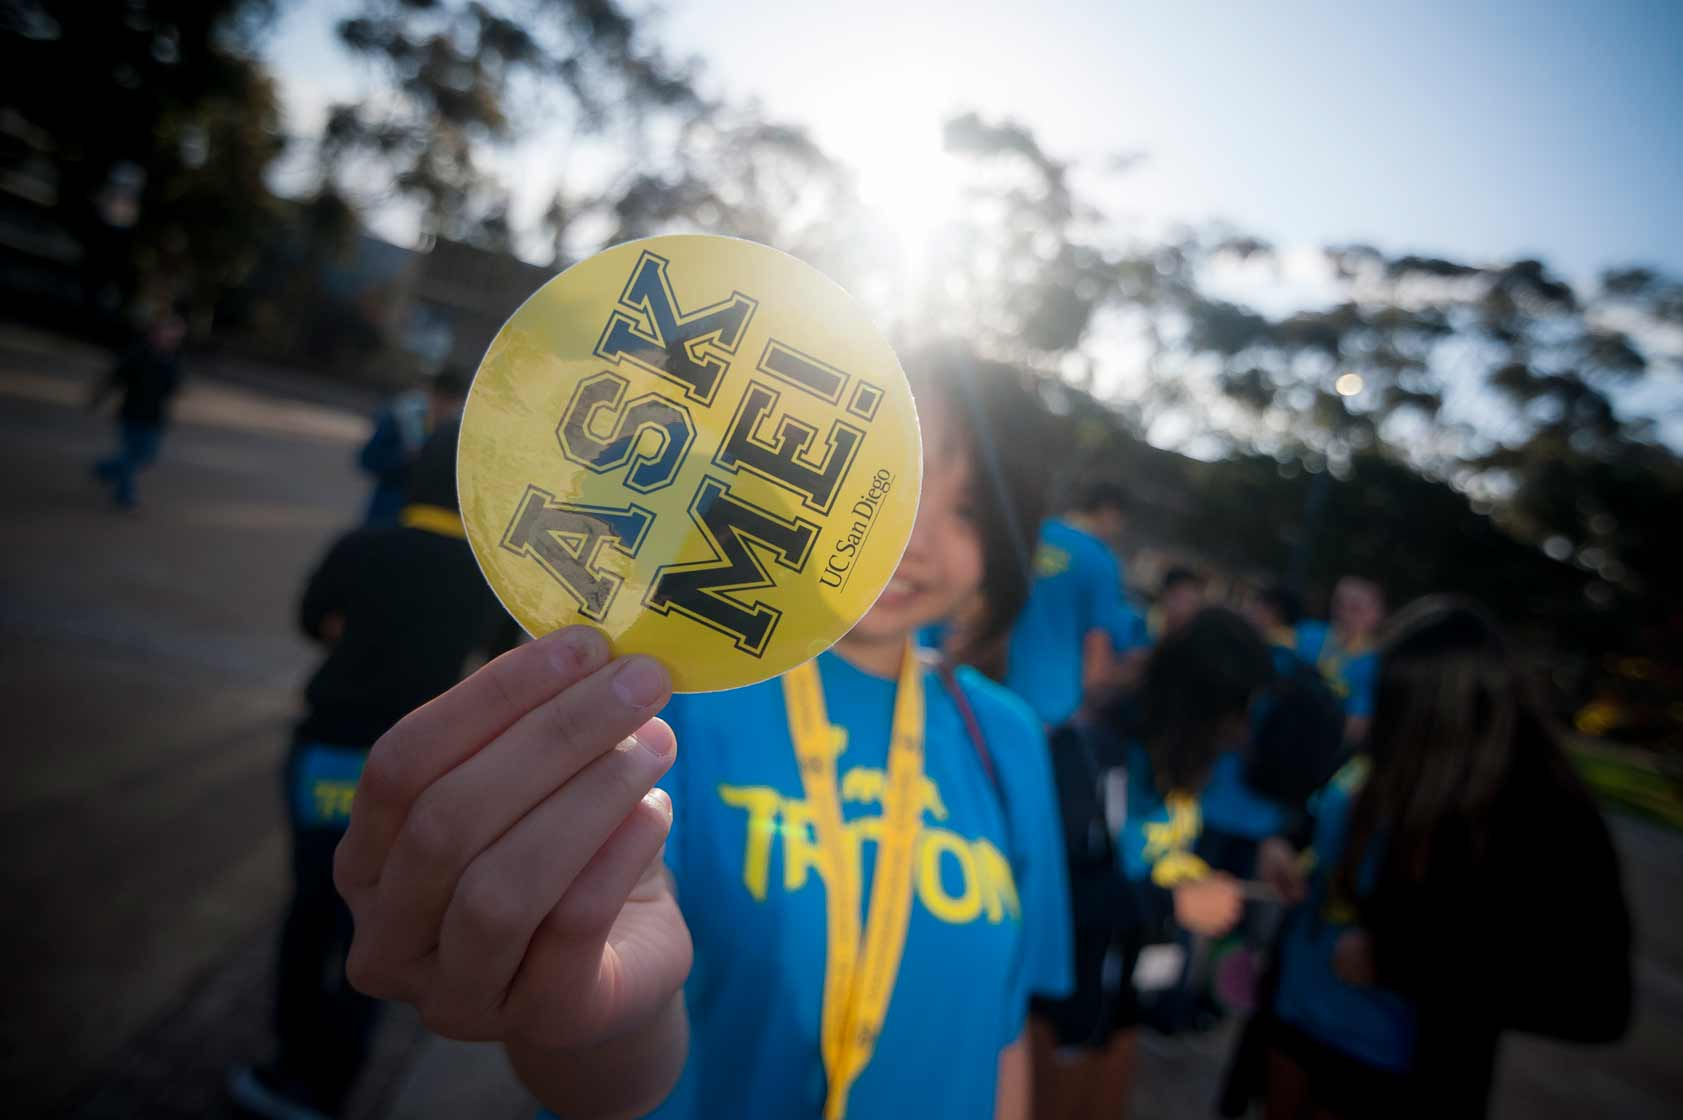 Hundreds of volunteers arrived on campus Saturday to welcome newly admitted freshmen to UC San Diego for Triton Day. <br><br>Erik Jepsen/UC San Diego Publications